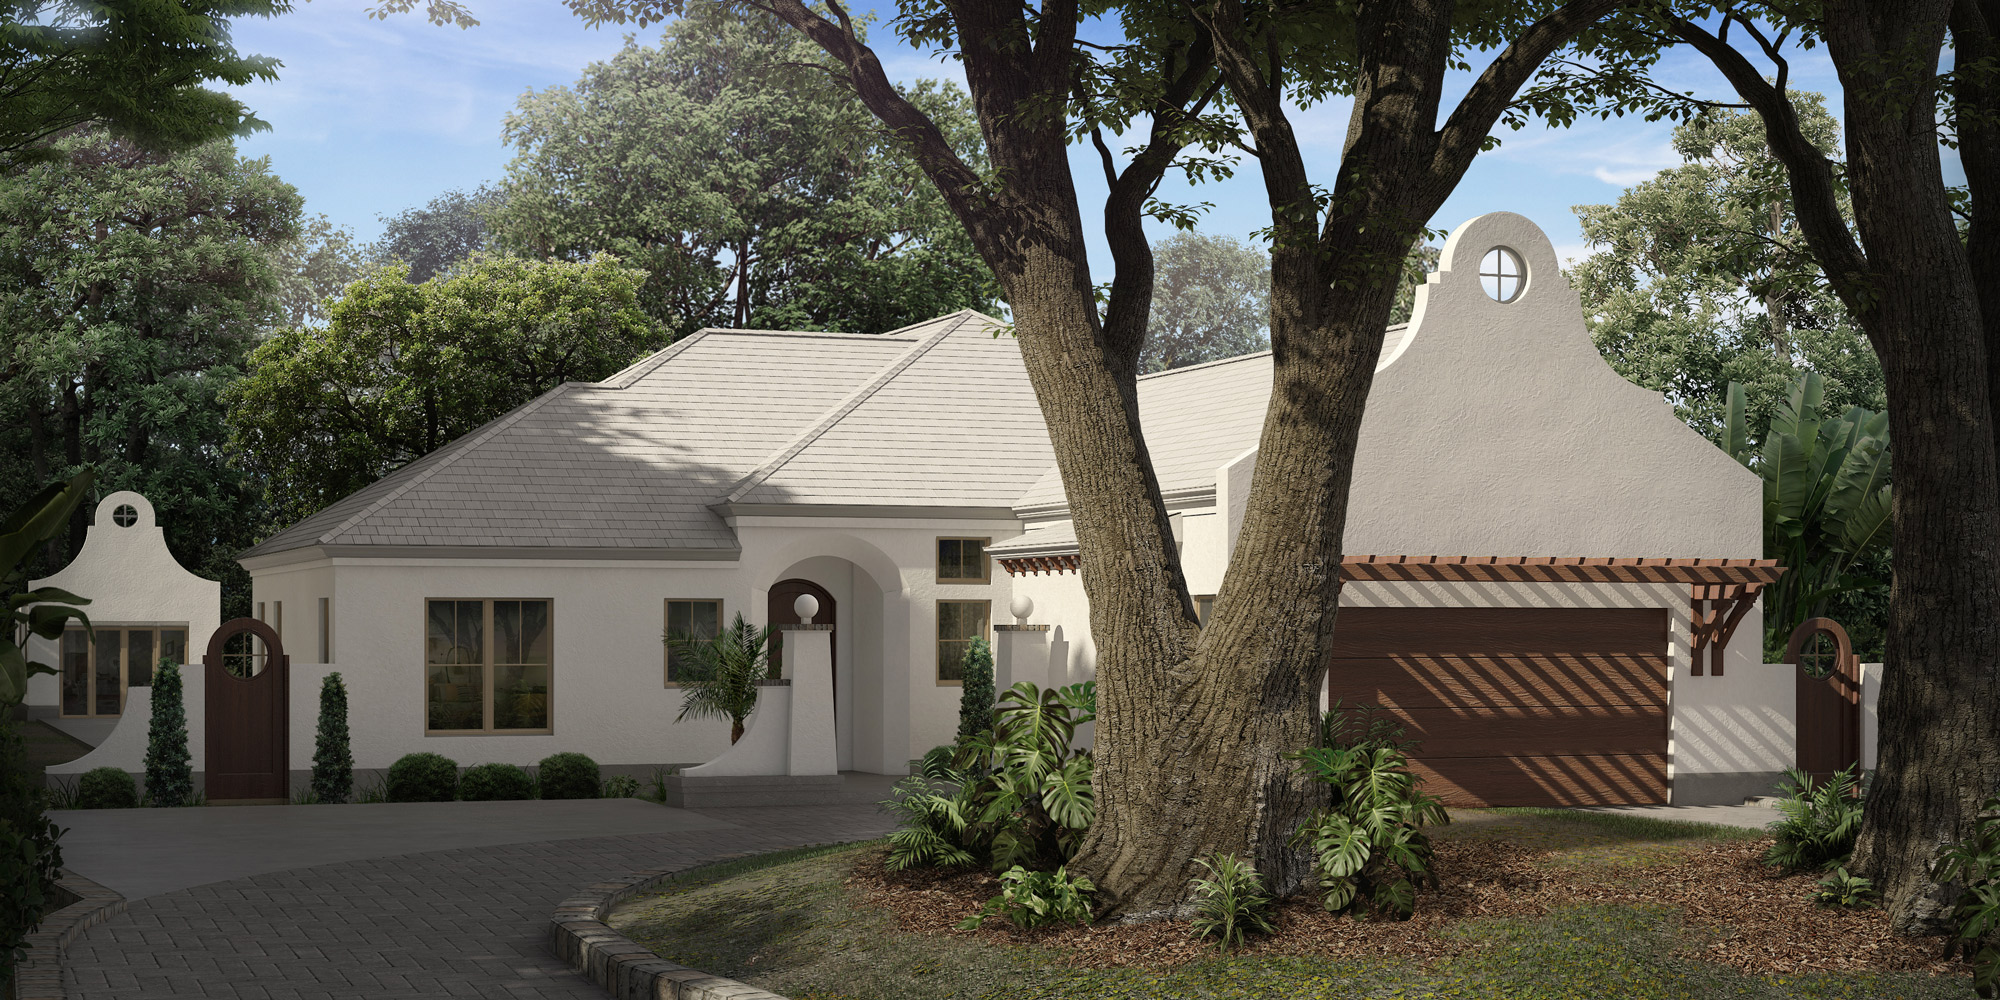 Residential Home 3D Rendering